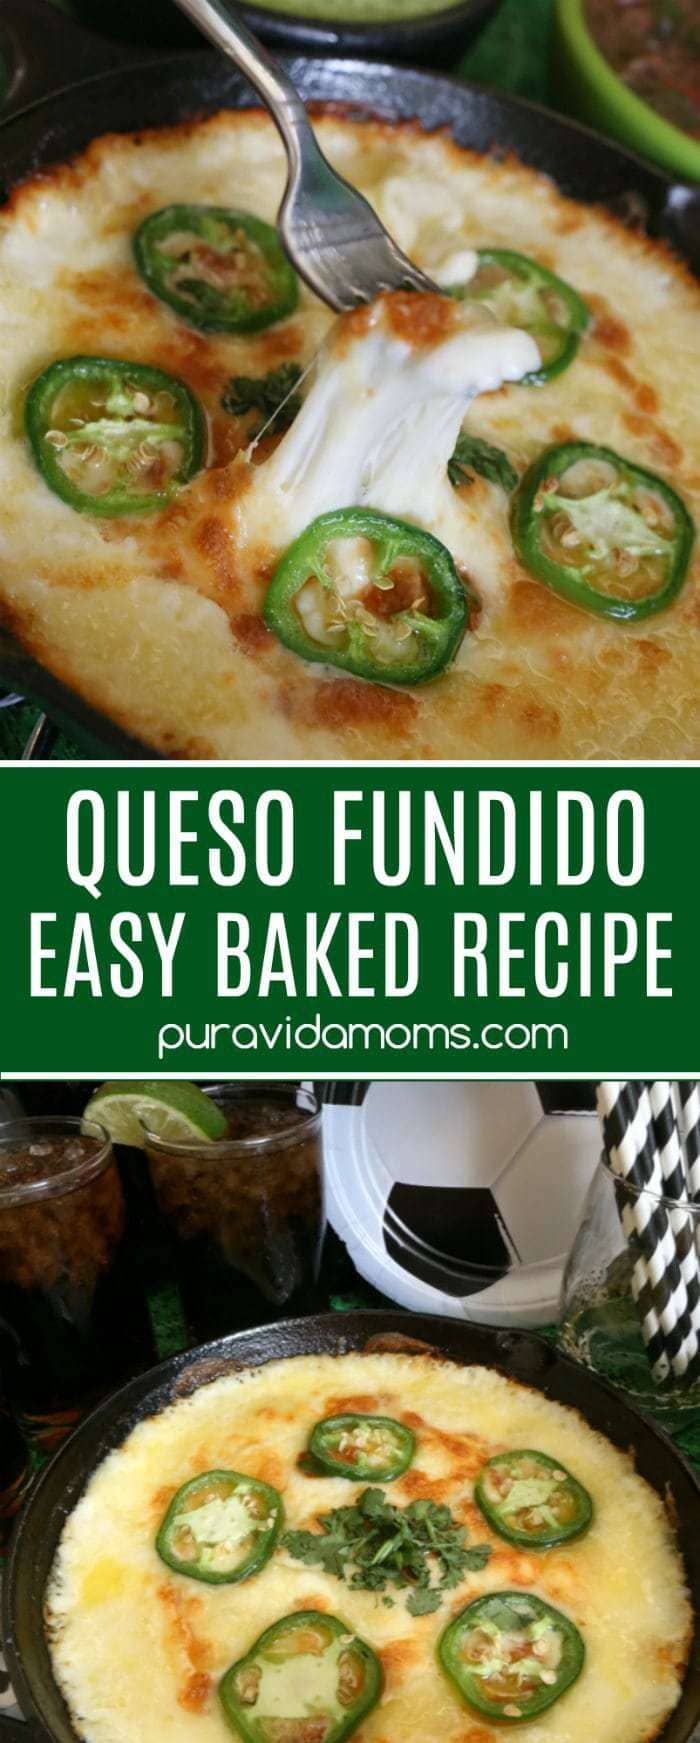 Queso fundido- a Mexican term for melted cheese in a skillet, is a warm, gooey and delicious appetizer. This easy baked vegetarian queso fundido will be sure to please a crowd!